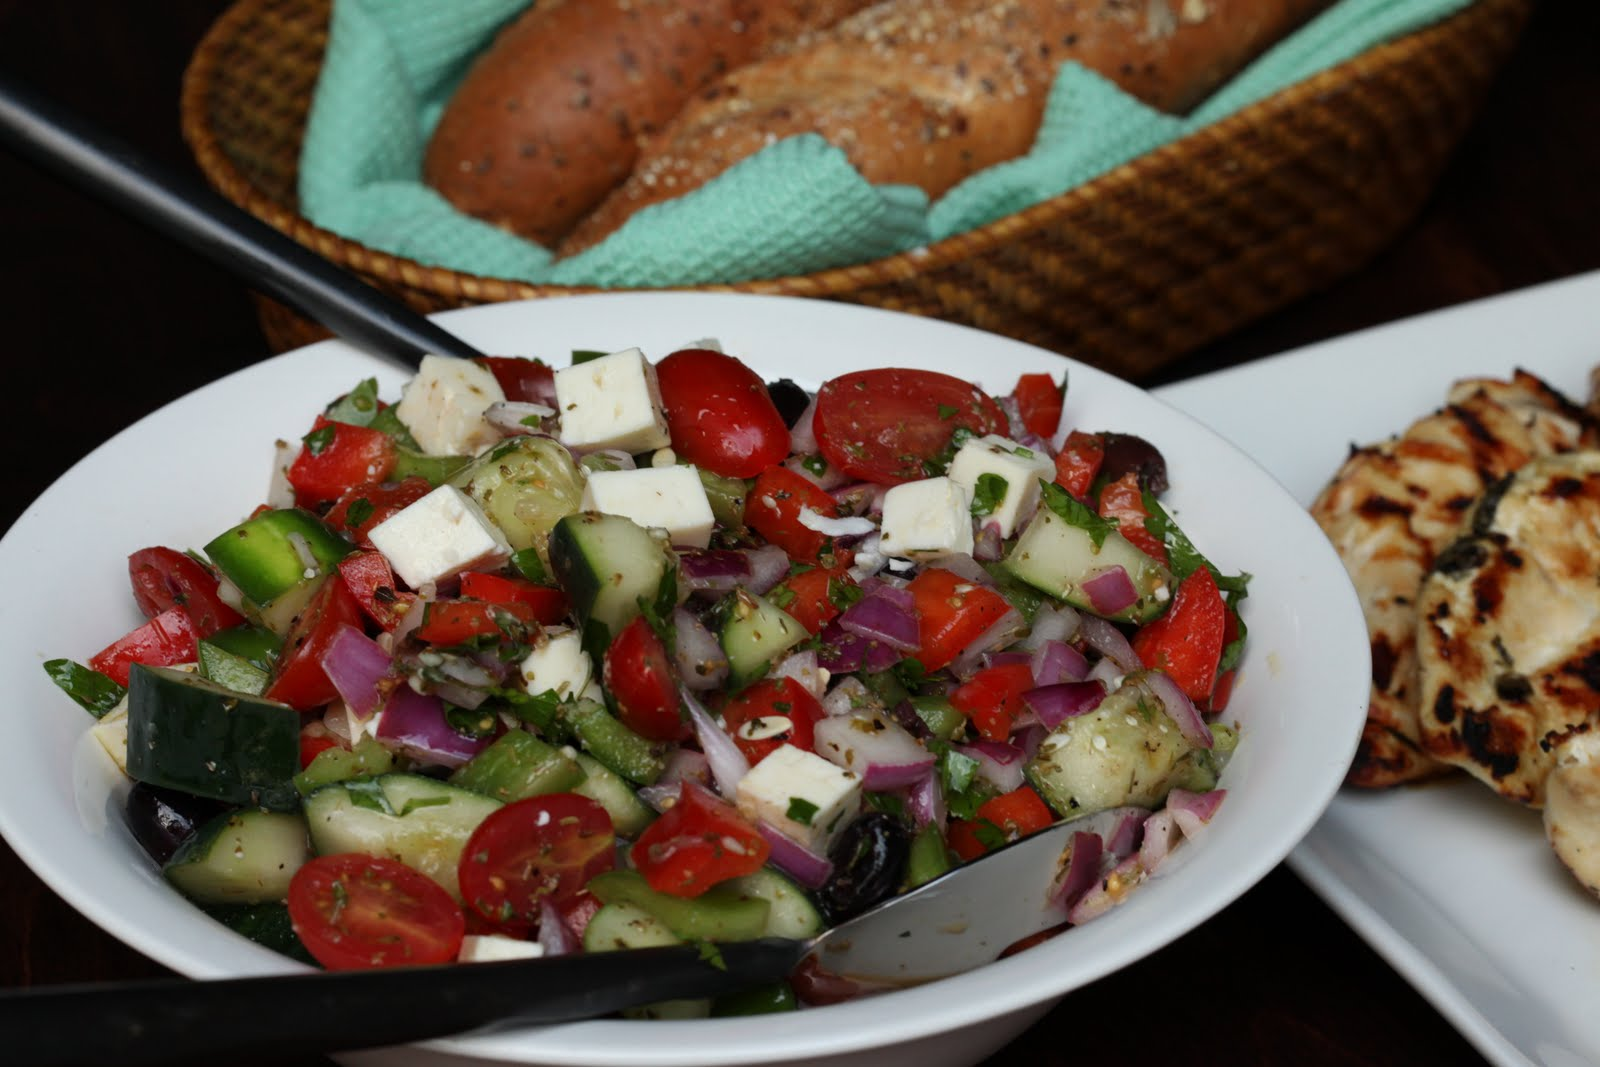 Bo's Bowl: Grilled Chicken with Chopped Greek Salad